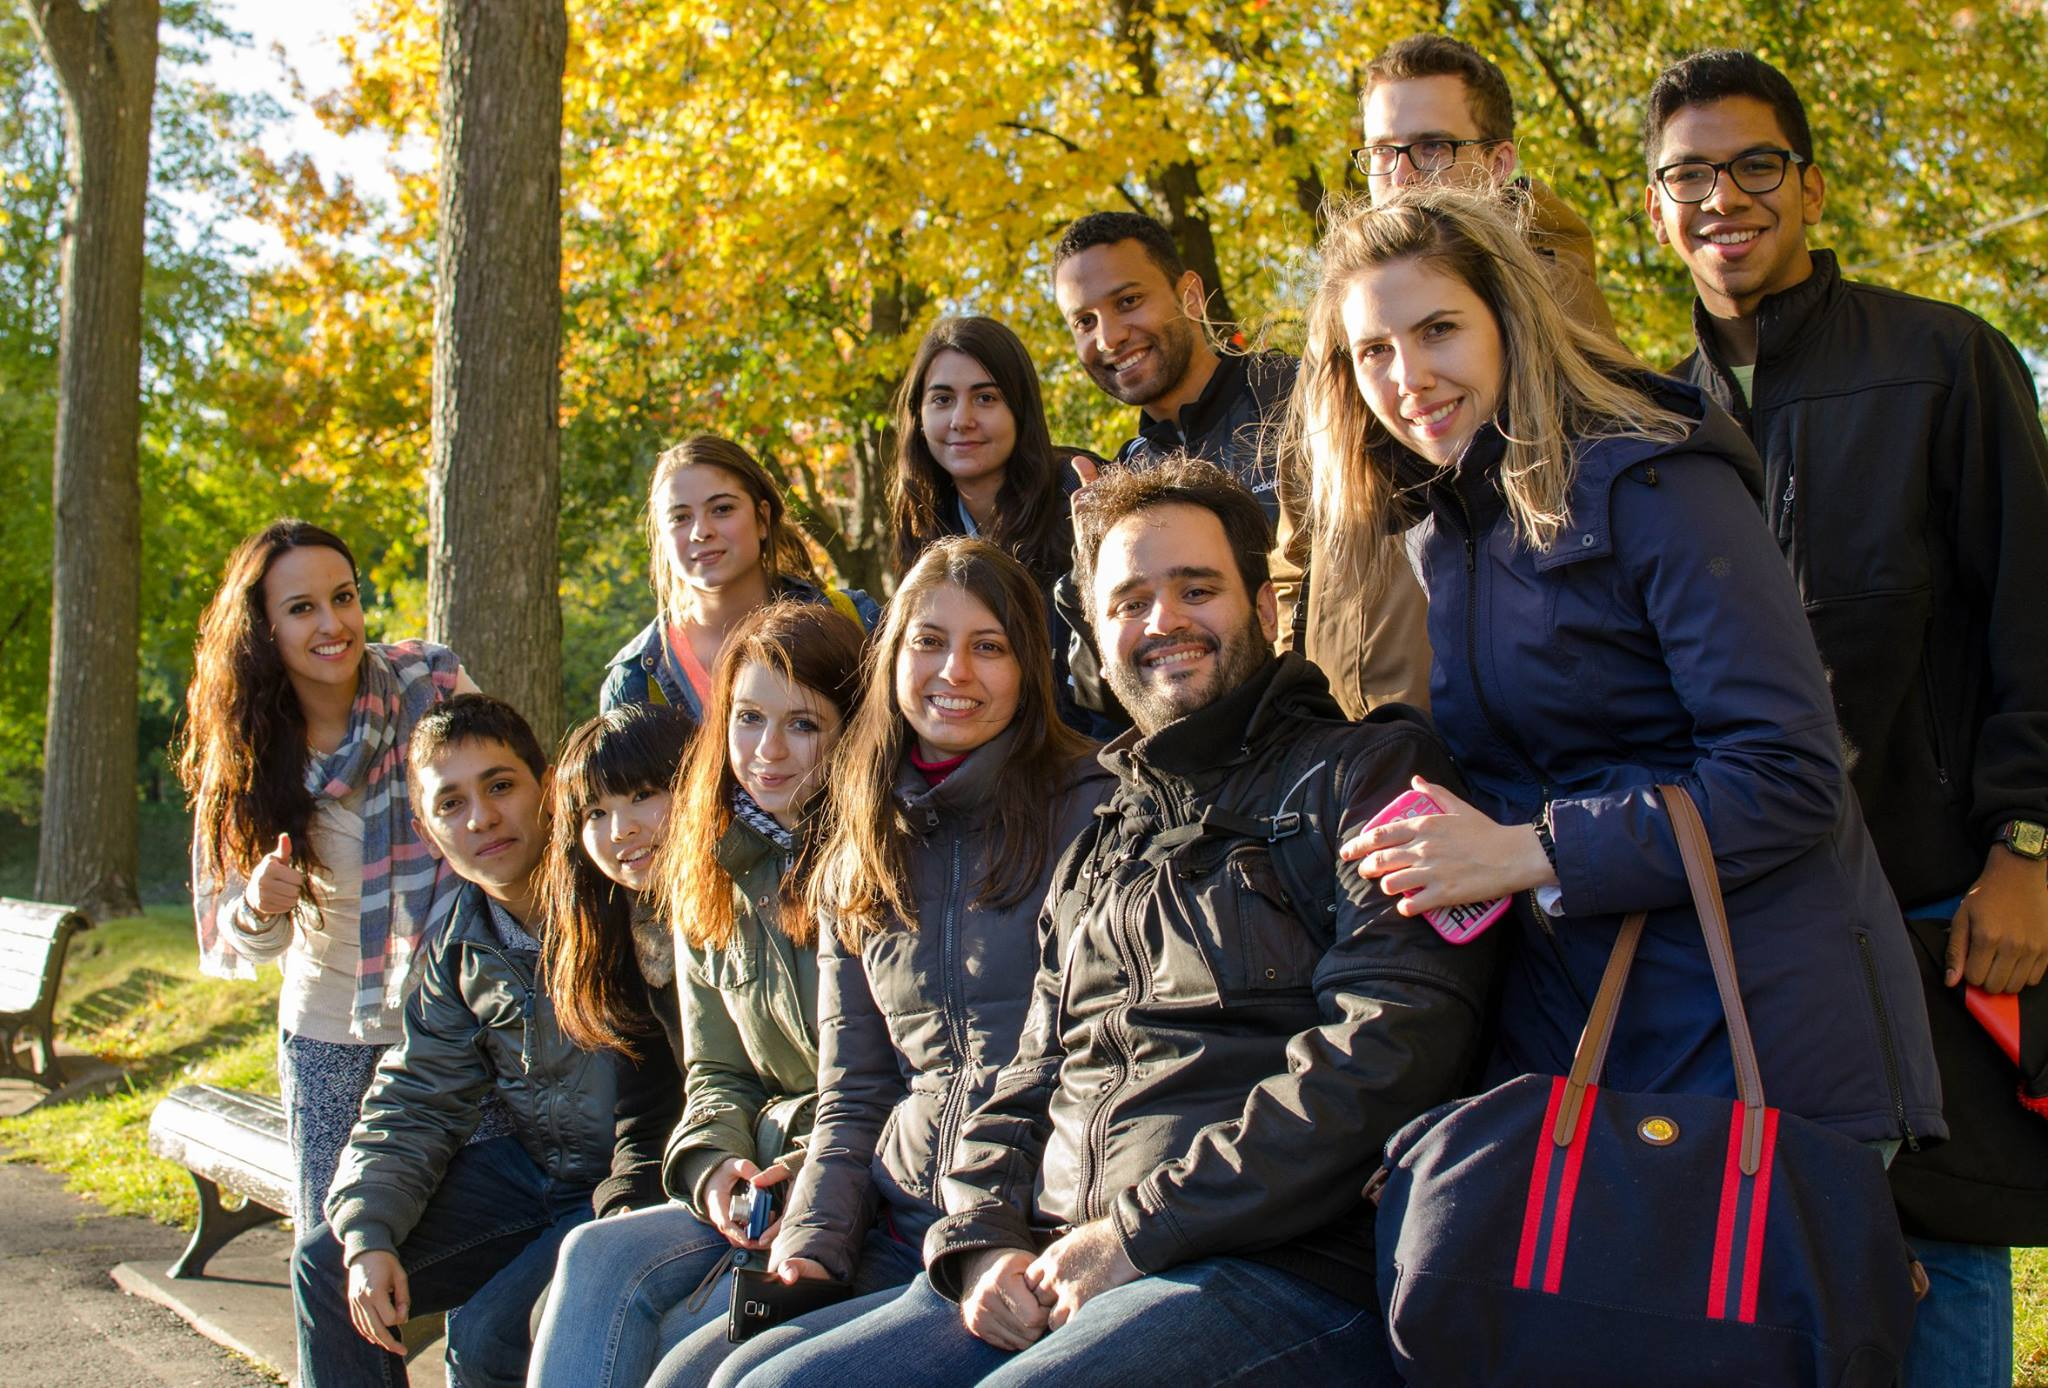 ilsc-montreal-students-mount-royal.jpg